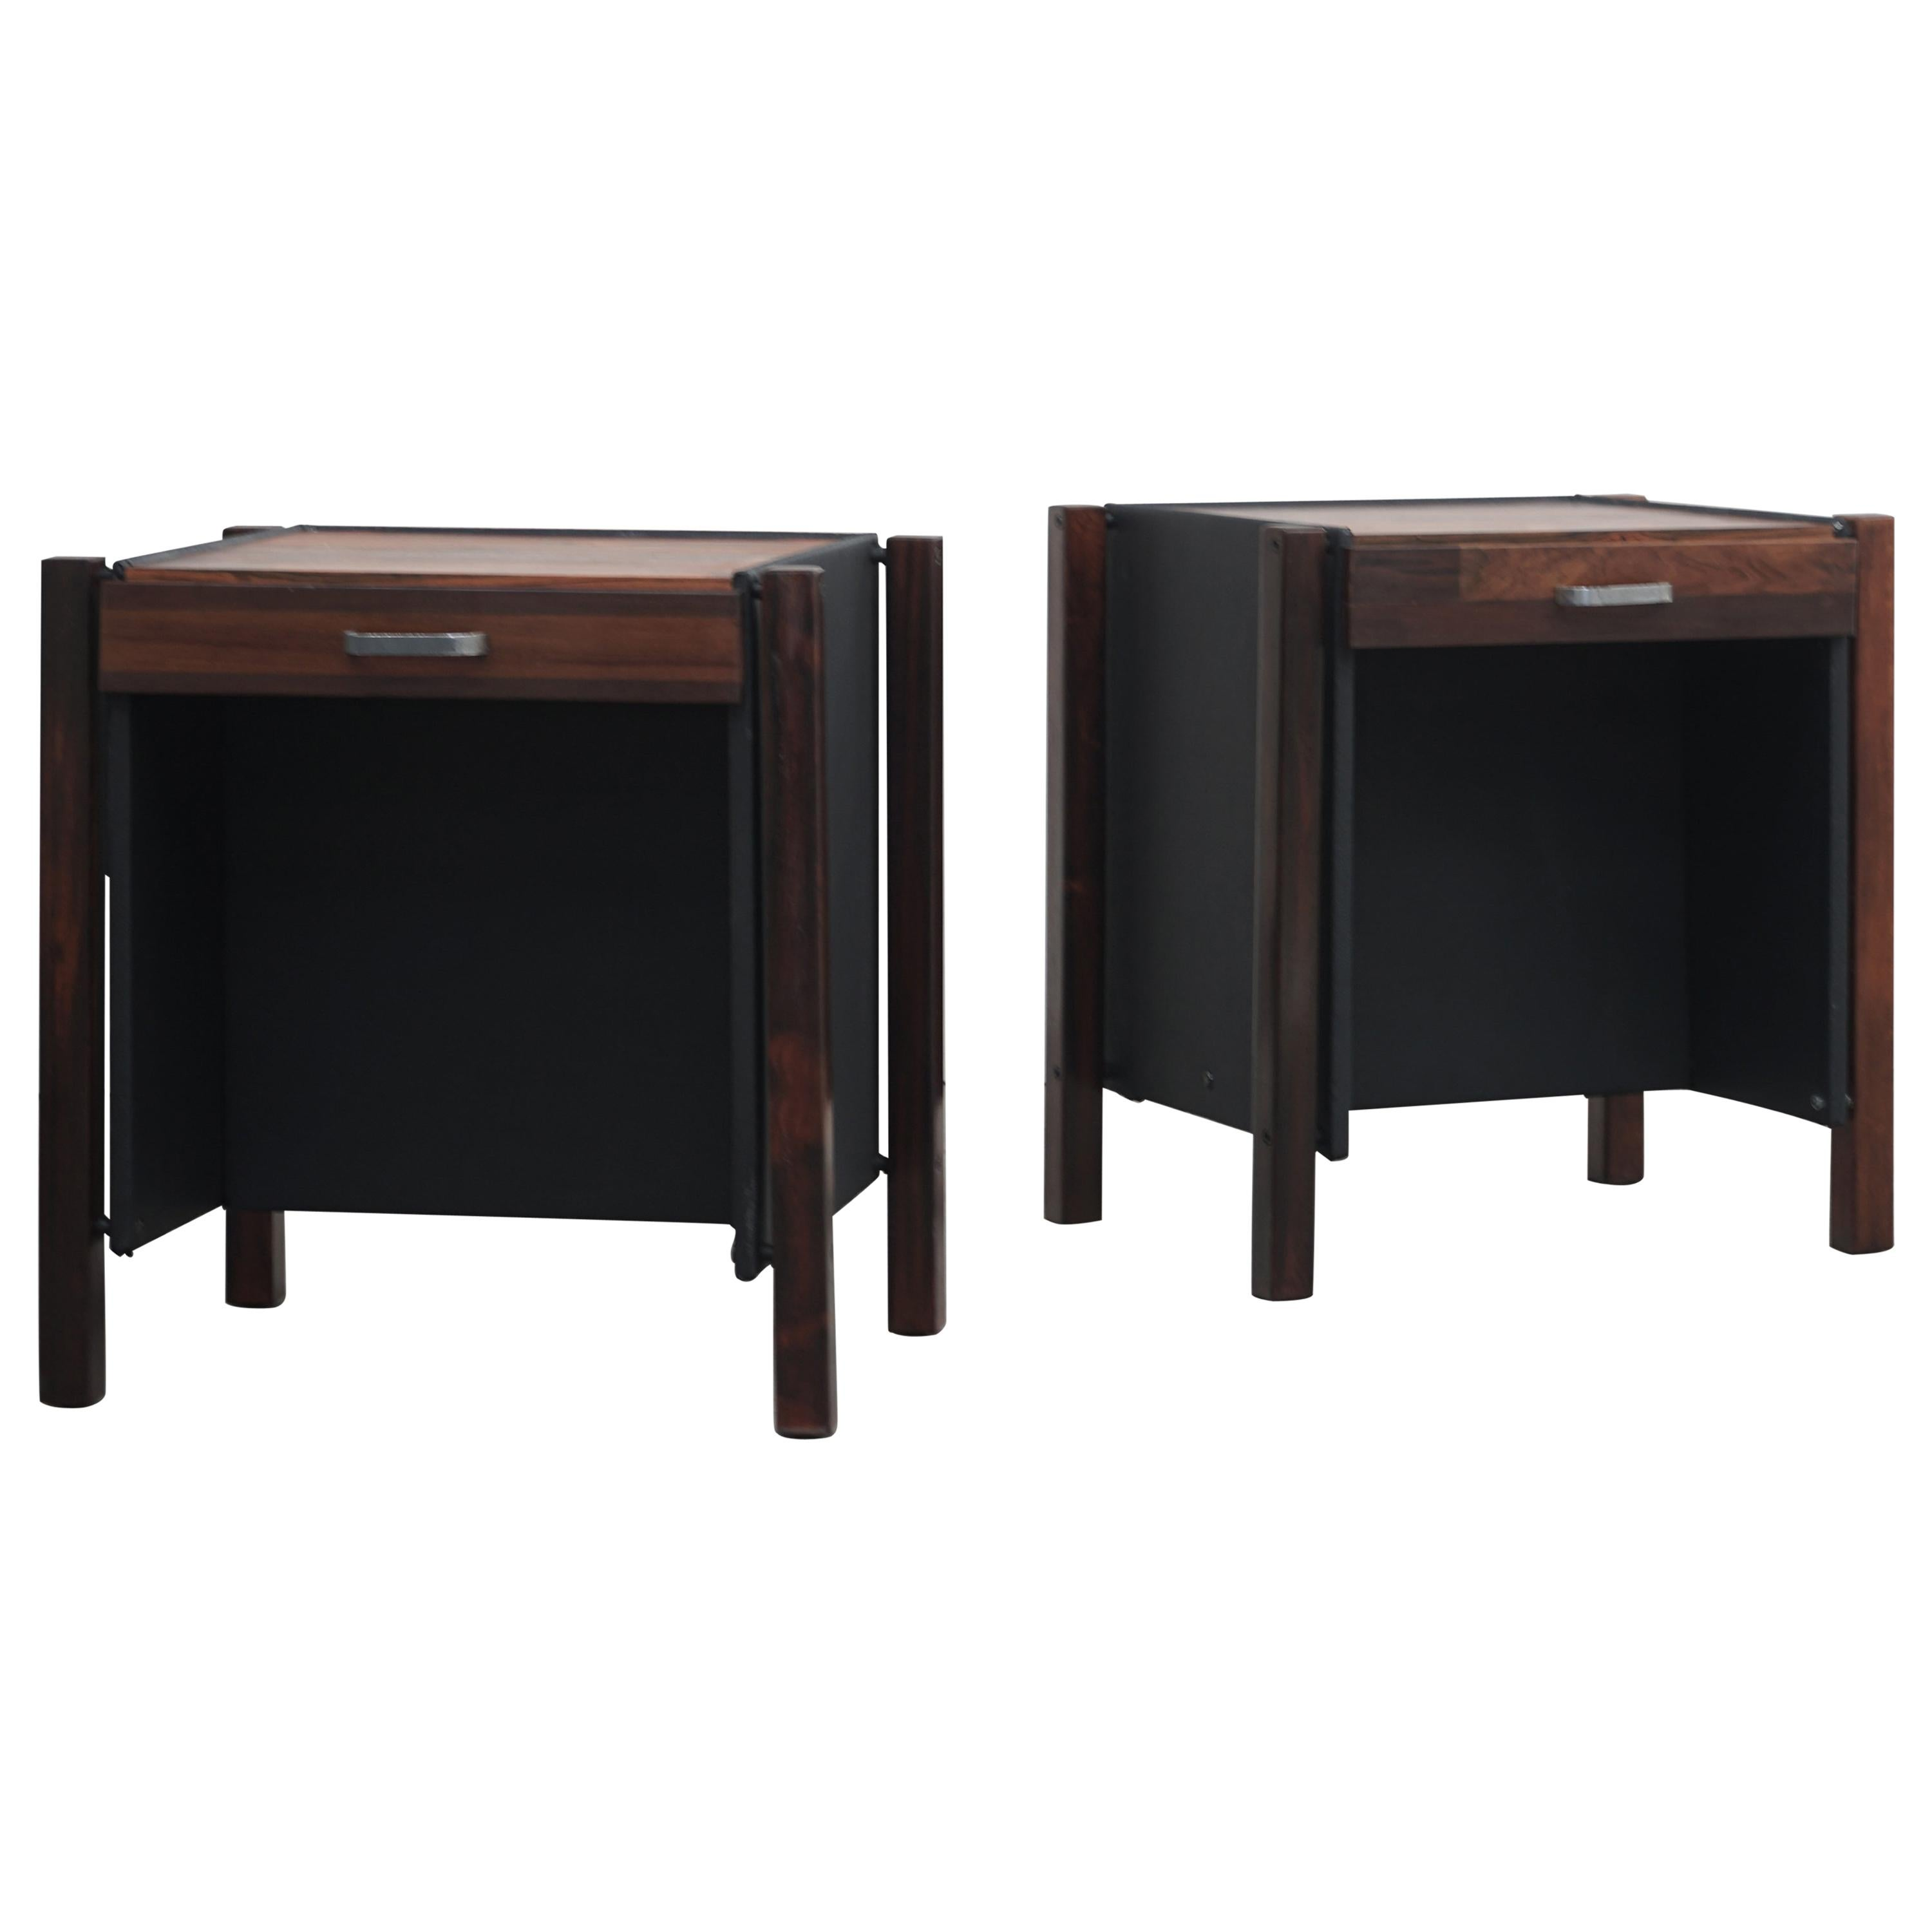 Pair of End Tables by Jorge Zalszupin, Brazilian Midcentury Design, 1960s